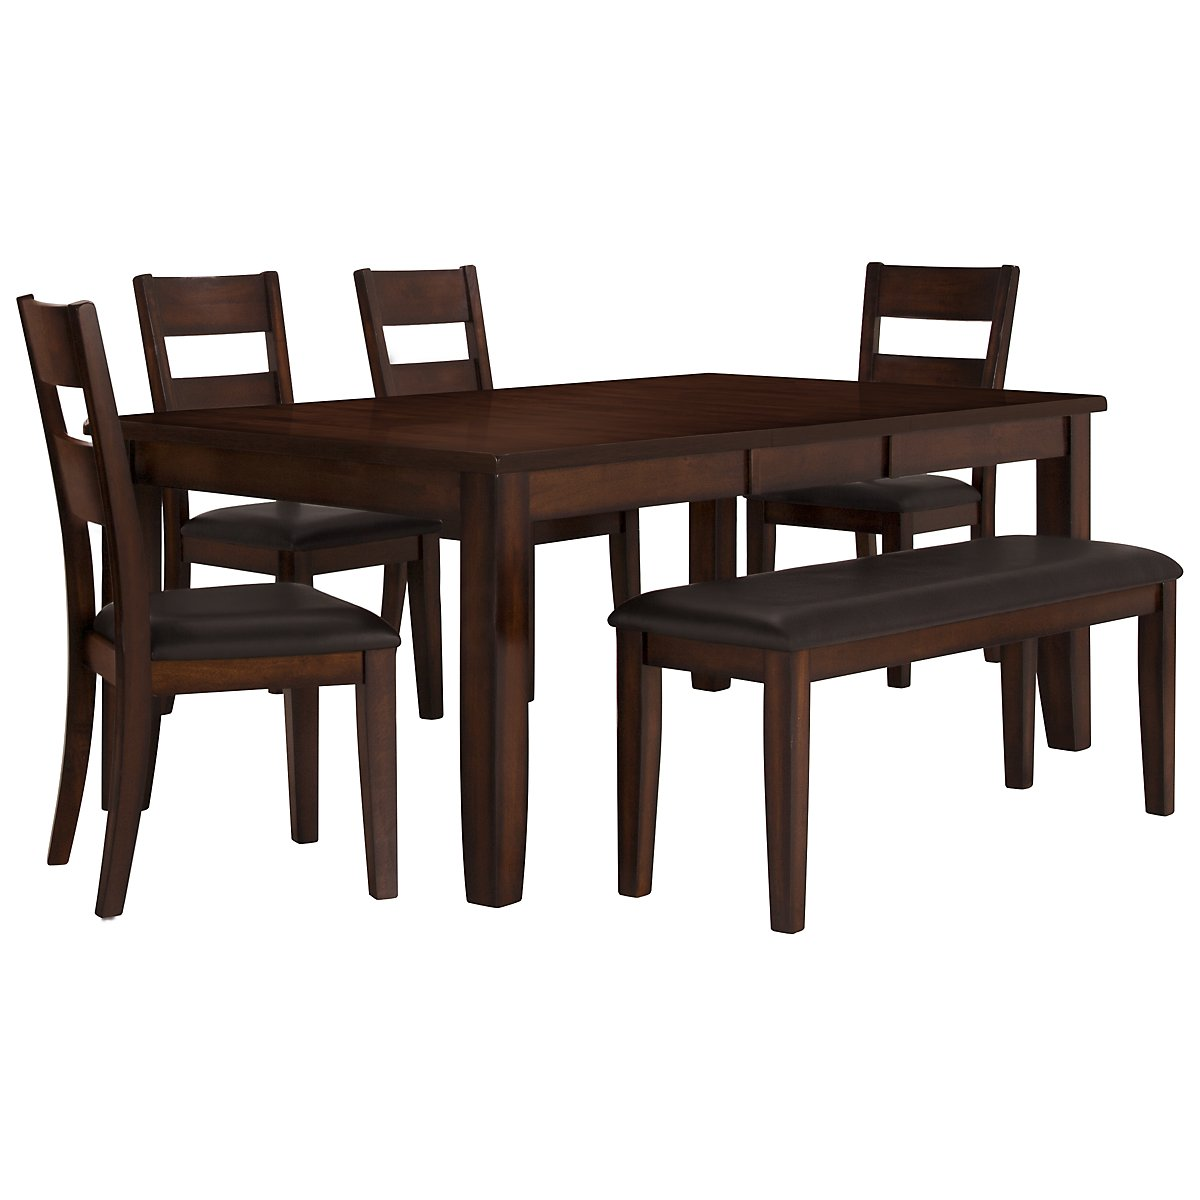 City Furniture: Mango2 Dark Tone Rectangular Table, 4 Chairs & Bench